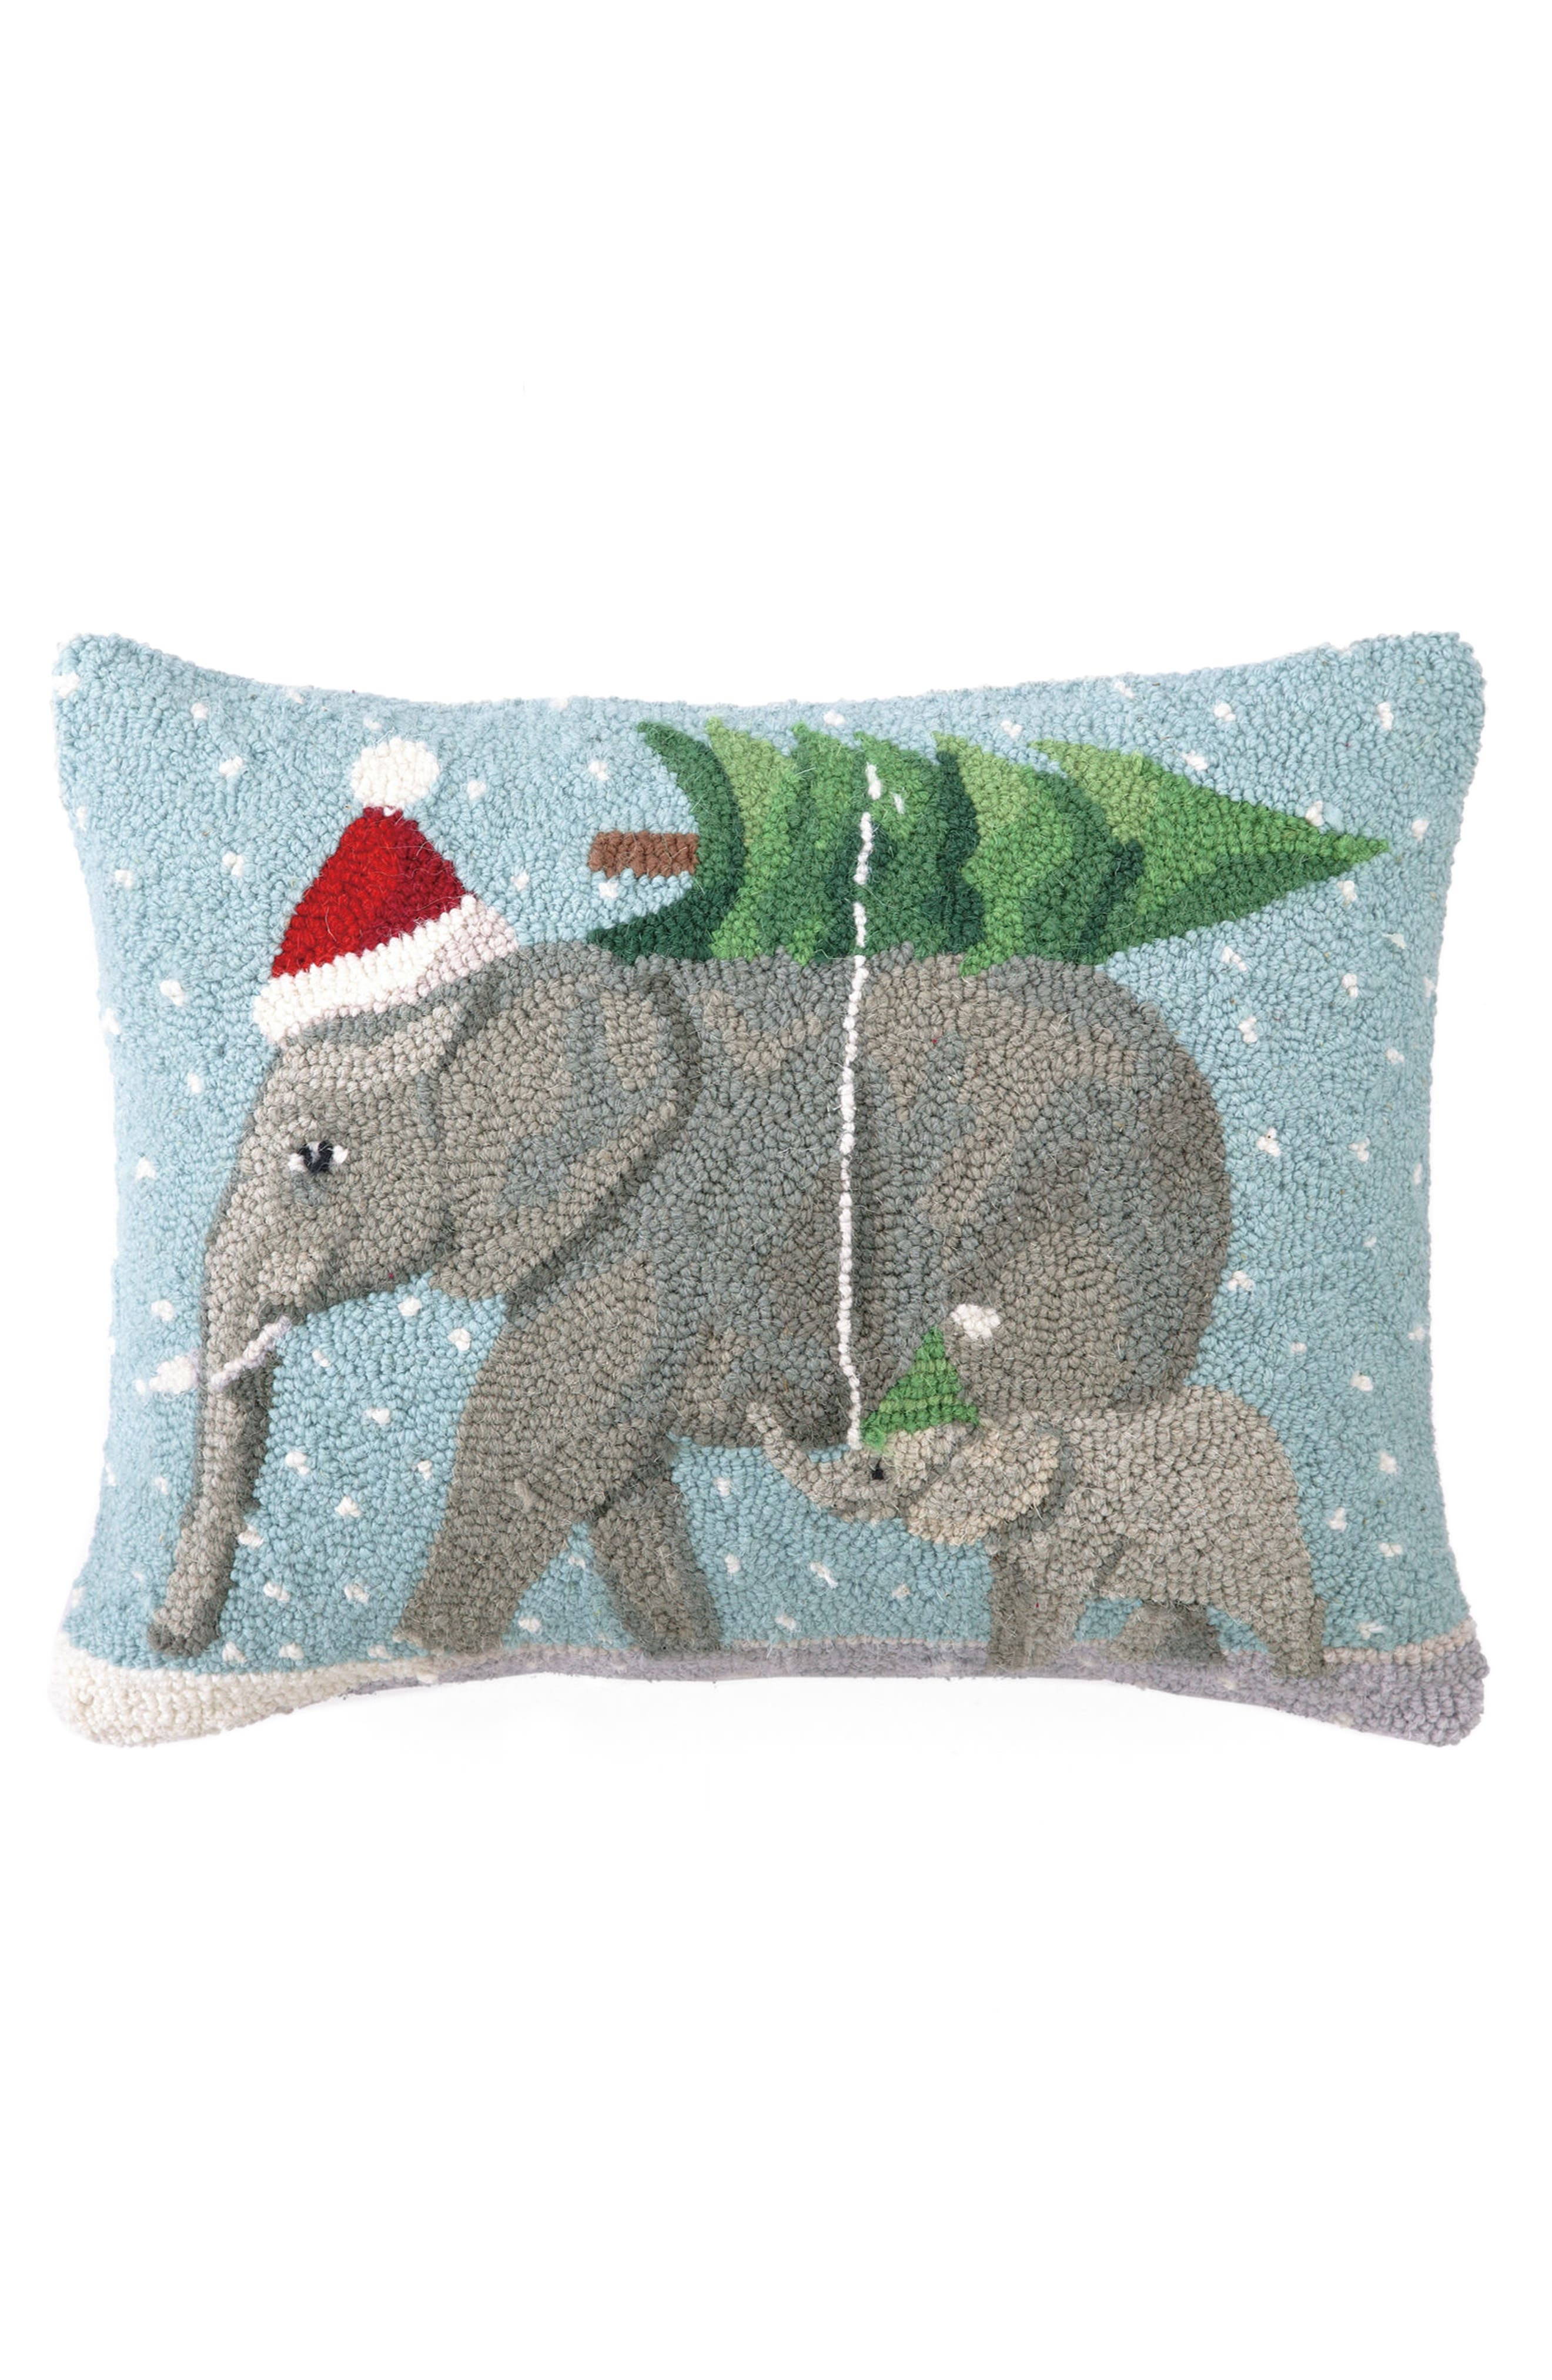 Christmas Elephants Hooked Accent Pillow,                         Main,                         color, Blue